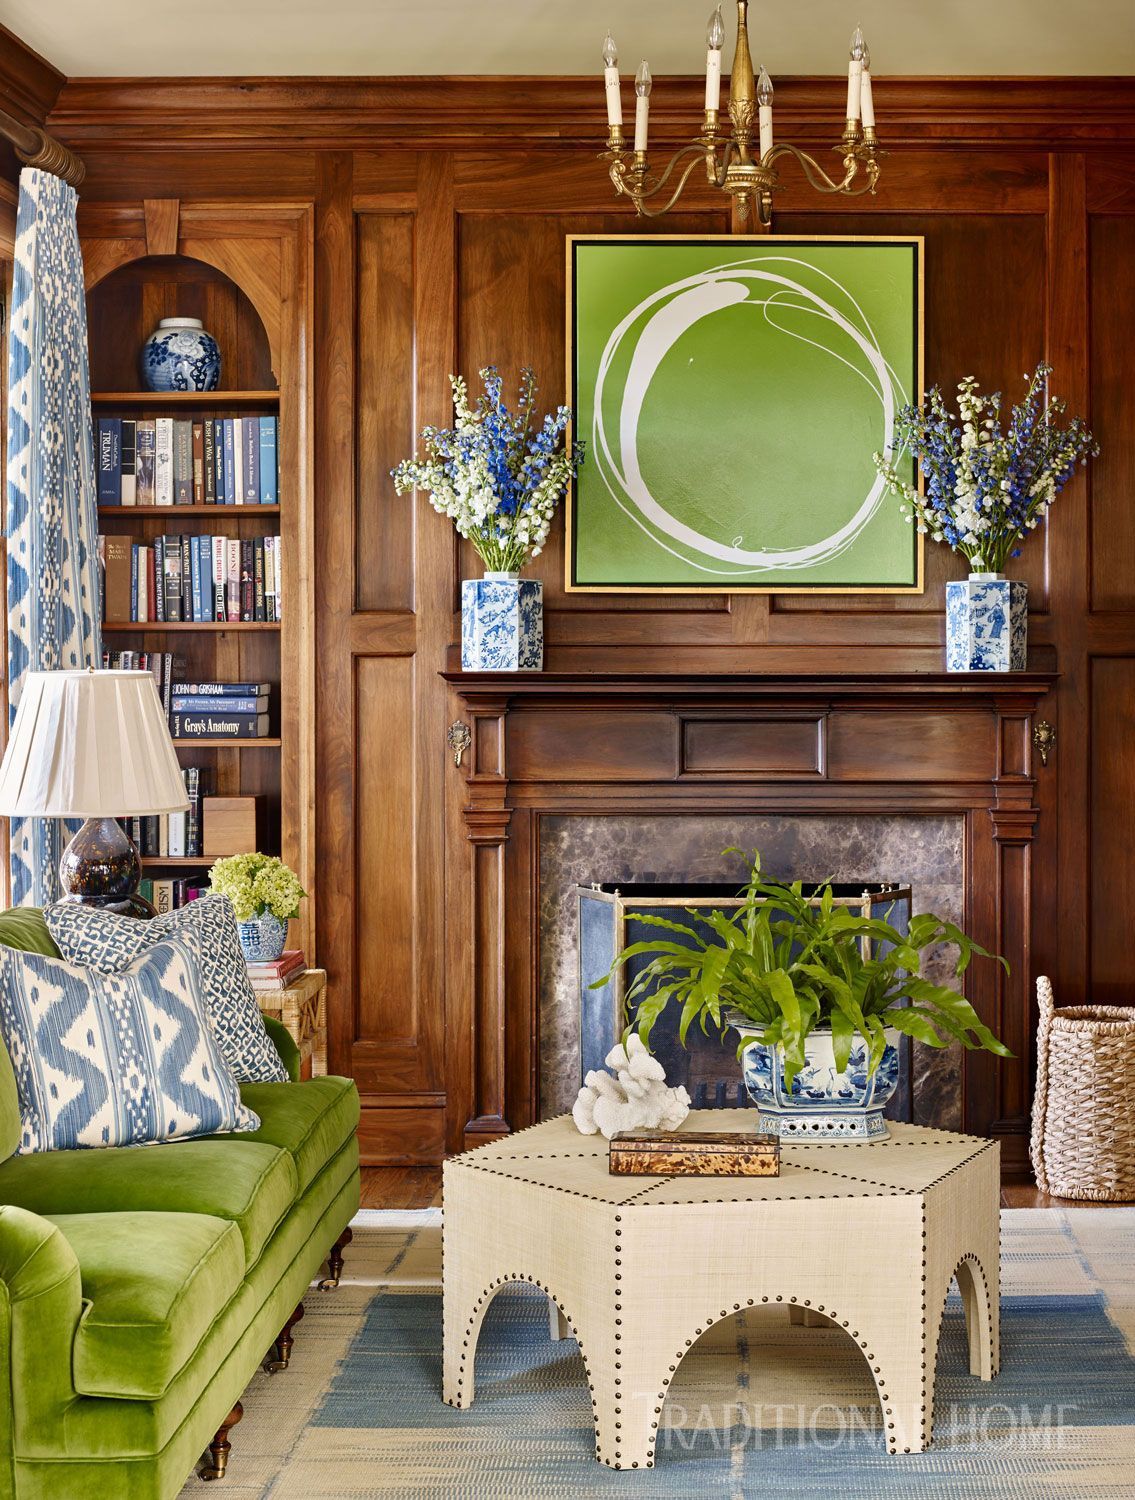 Fresh greens in art and upholstery bring energy to the husbands favorite retreat photo